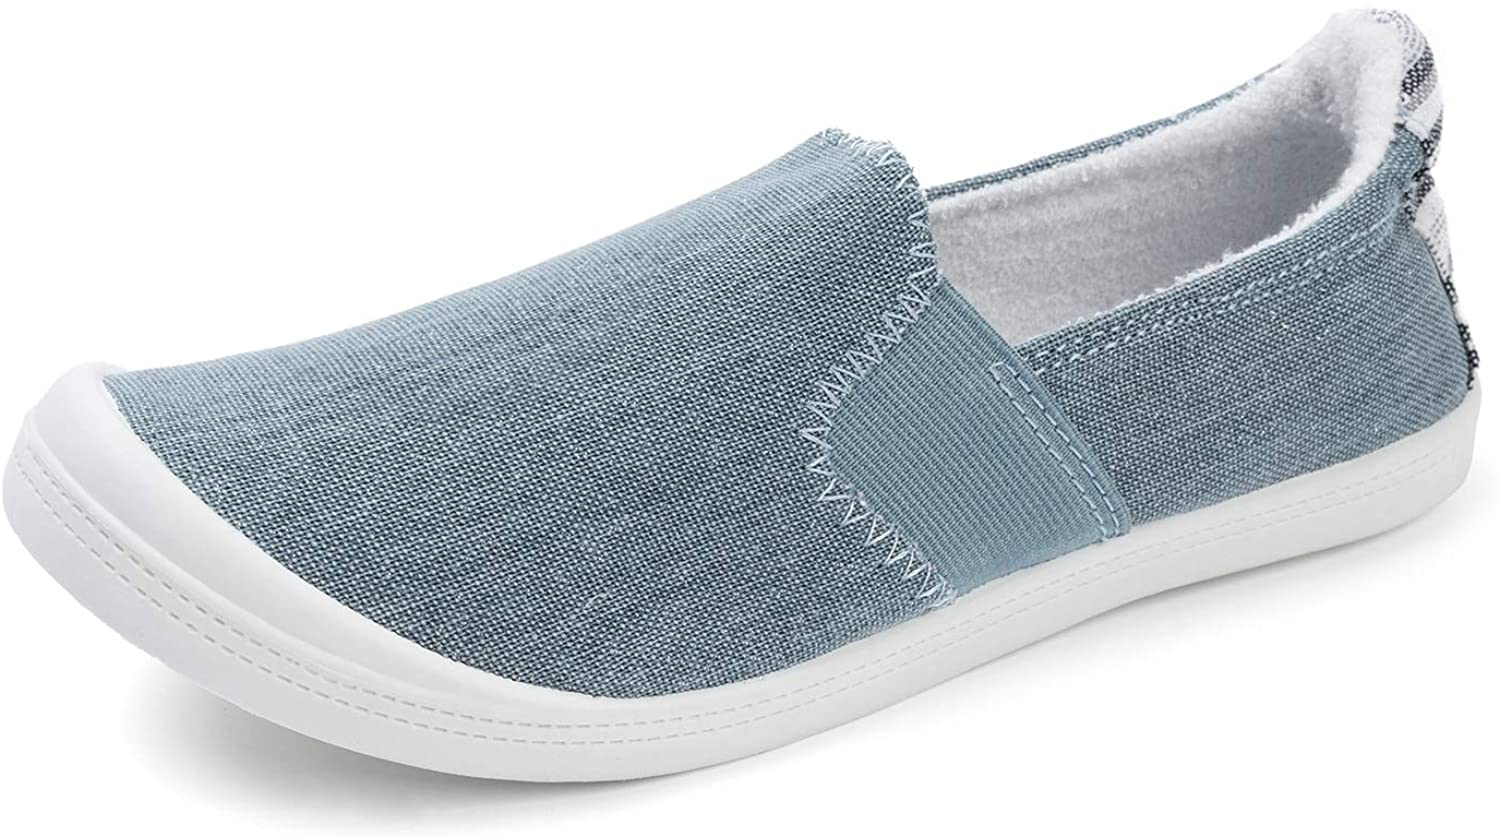 FUNKYMONKEY Women's Jacksonville Mall Canvas Slip On Shoes Casual Flats Max 61% OFF Comfort Sn